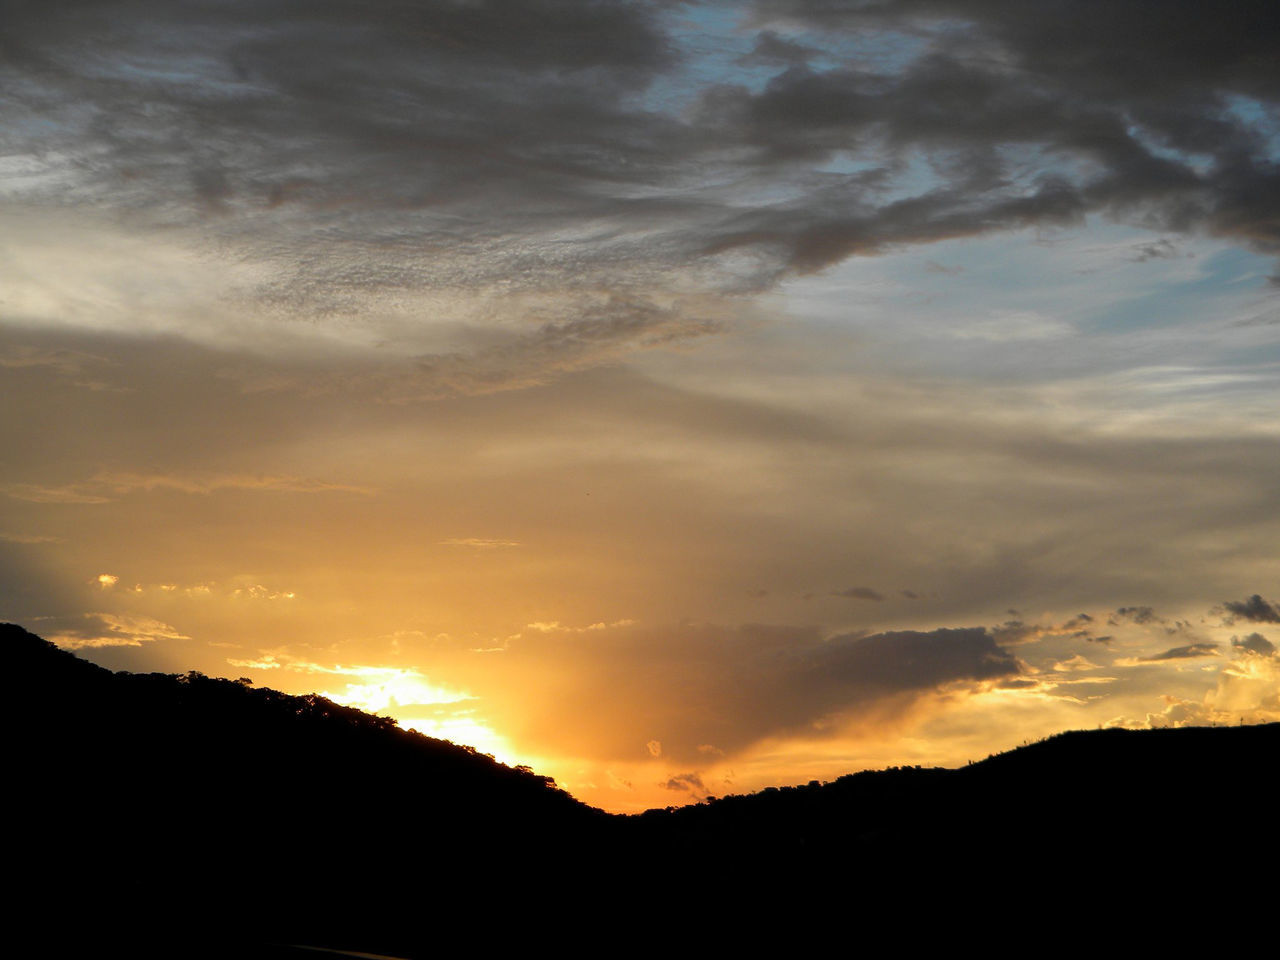 sunset, silhouette, sky, beauty in nature, tranquil scene, nature, scenics, cloud - sky, majestic, tranquility, dramatic sky, no people, outdoors, day